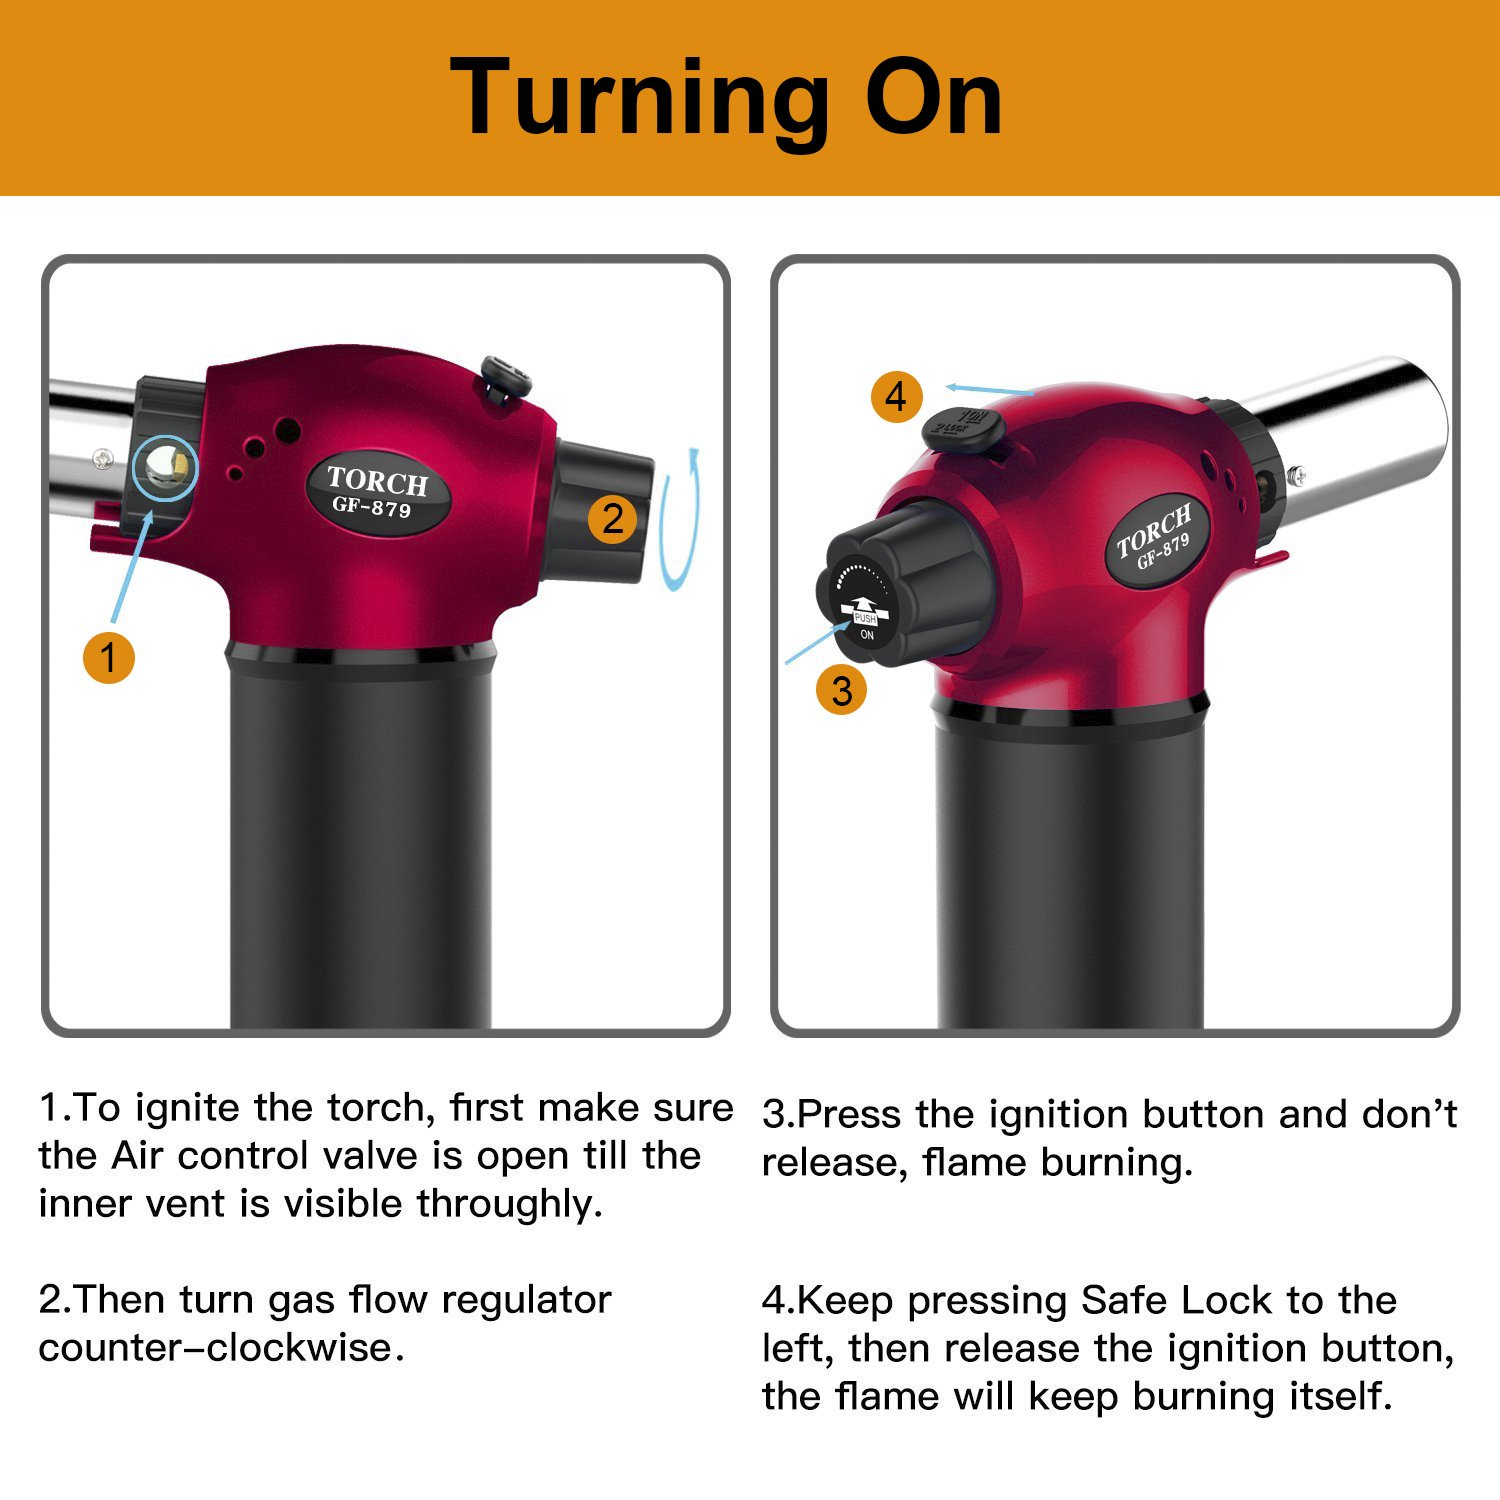 Blow Torch, Refillable Cooking Kitchen Butane Torch Lighter With Safety Lock & Adjustable Flame Perfect for Pastries, Desserts, Brazing, Soldering, Welding, Melting, Heating, Peeling & More by Semdisan (Image #5)